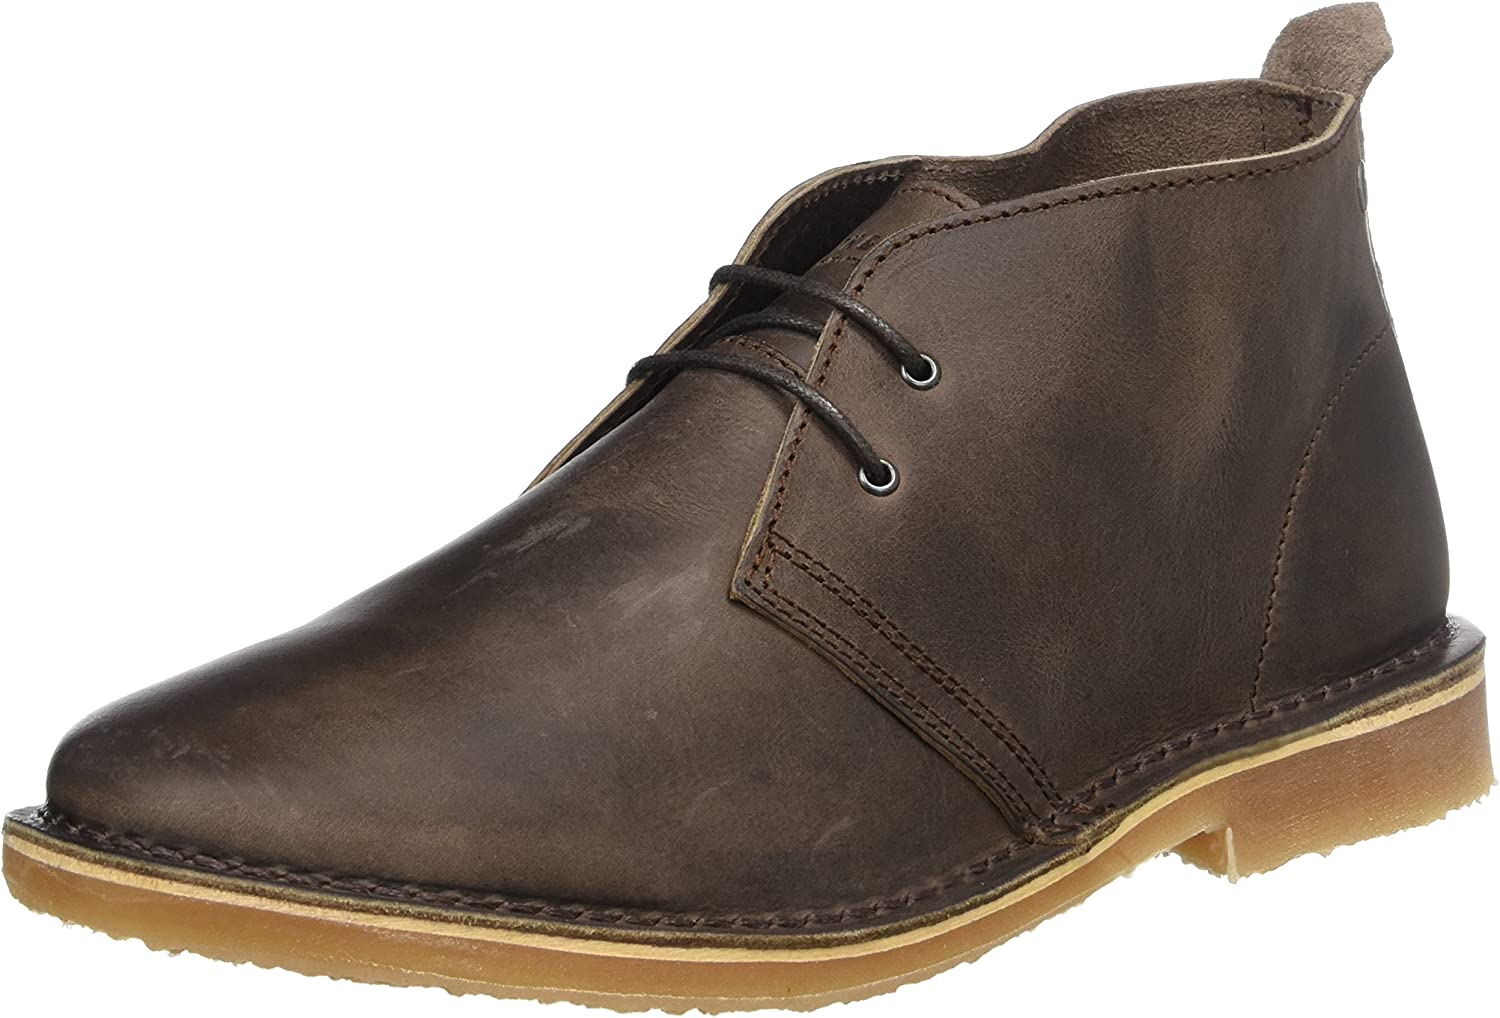 Jack & Jones Men's Jfwgobi Leather Chocolate Brown Desert Boots